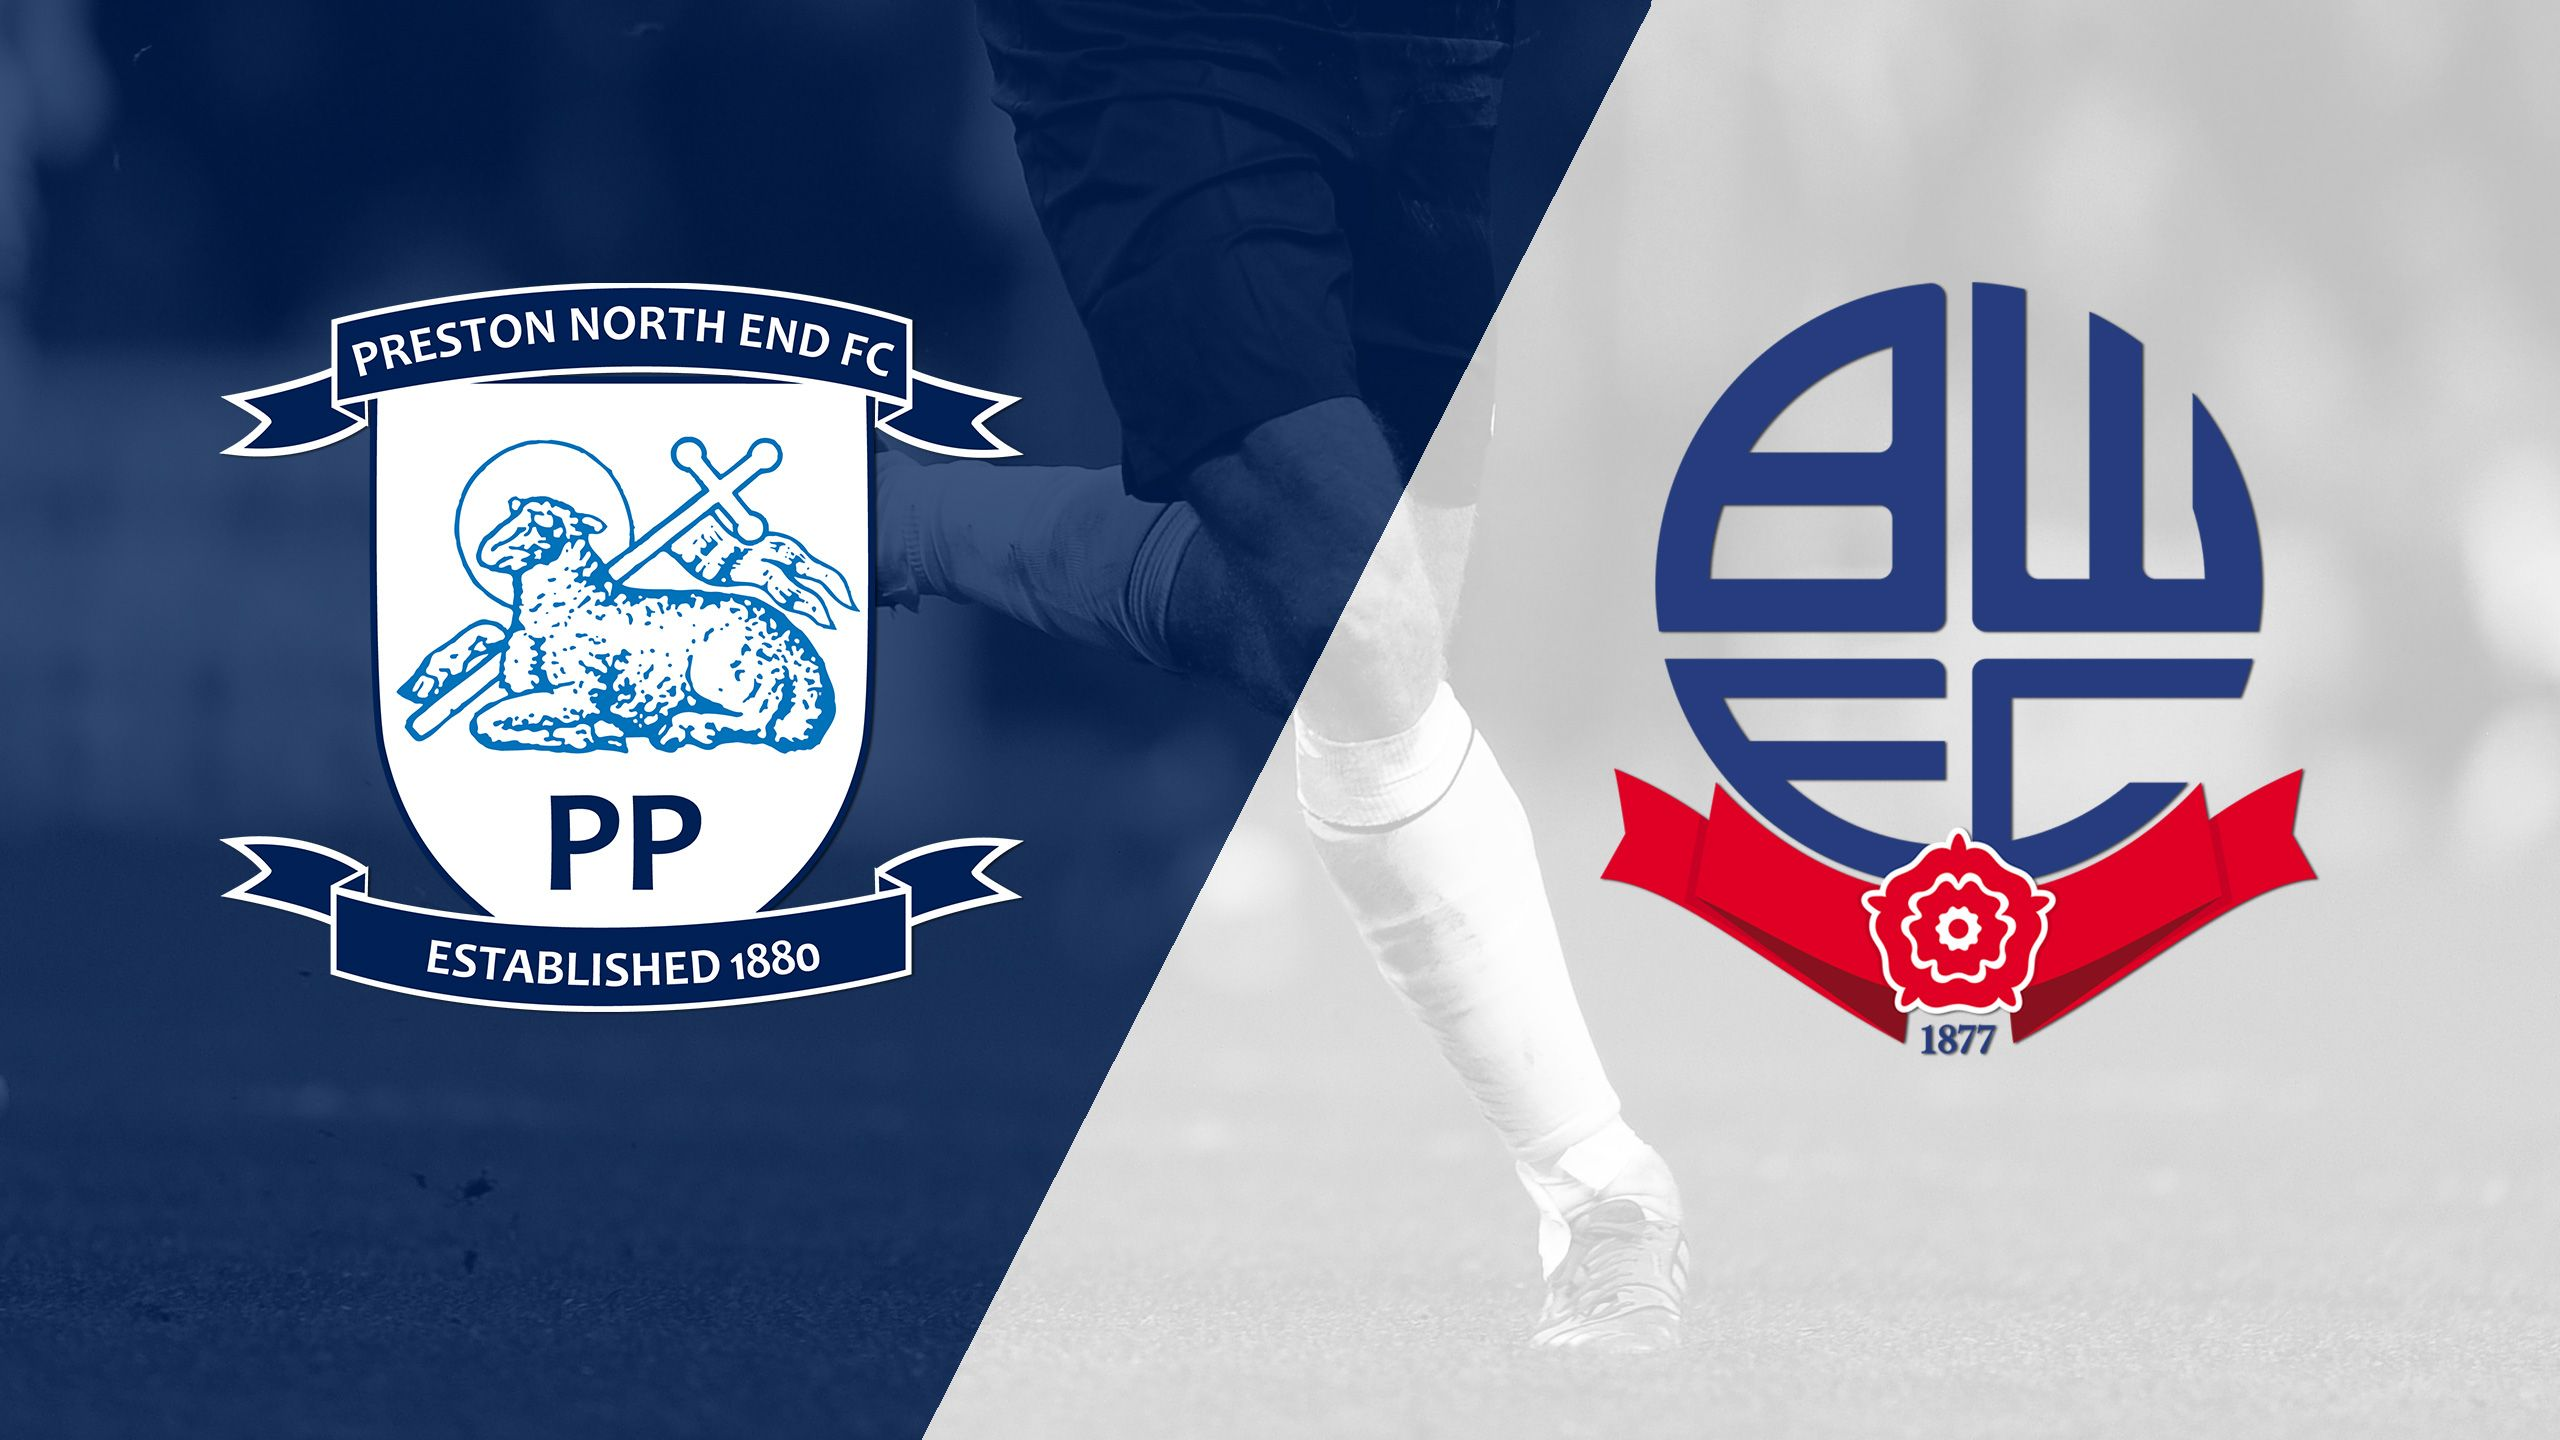 Preston North End vs. Bolton Wanderers (English League Championship)